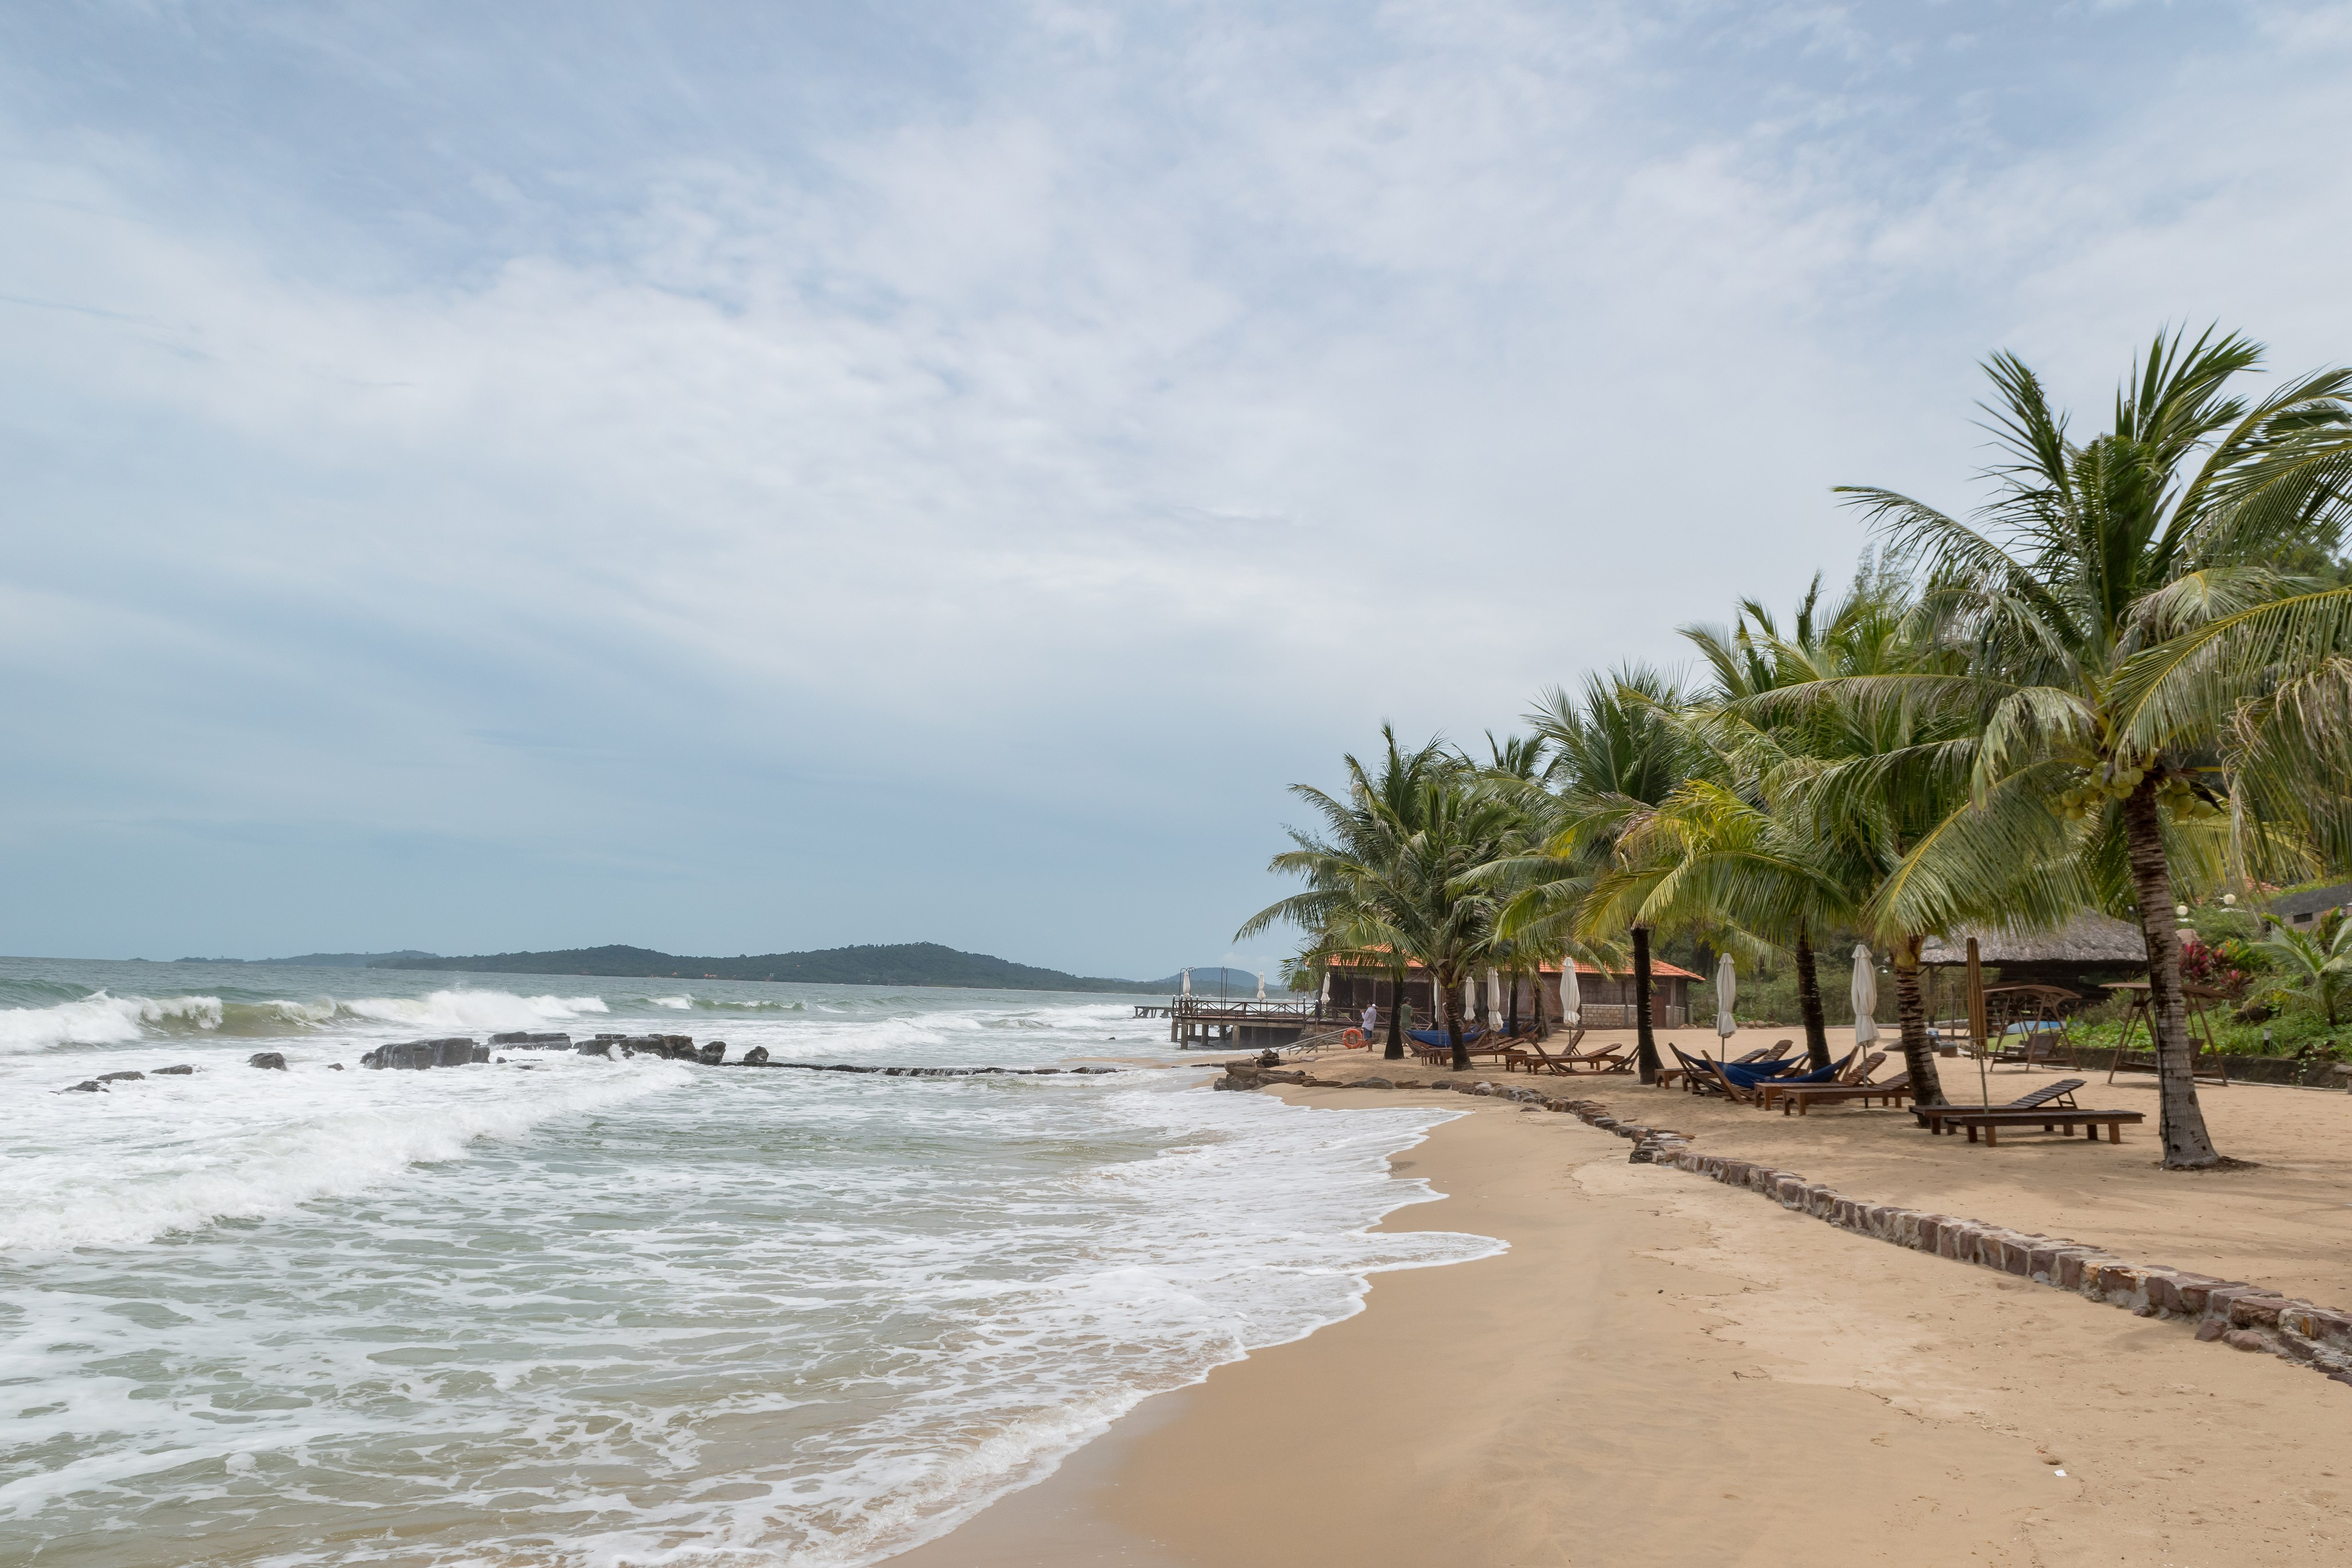 Shore line with palm trees of a beach in Vietnam